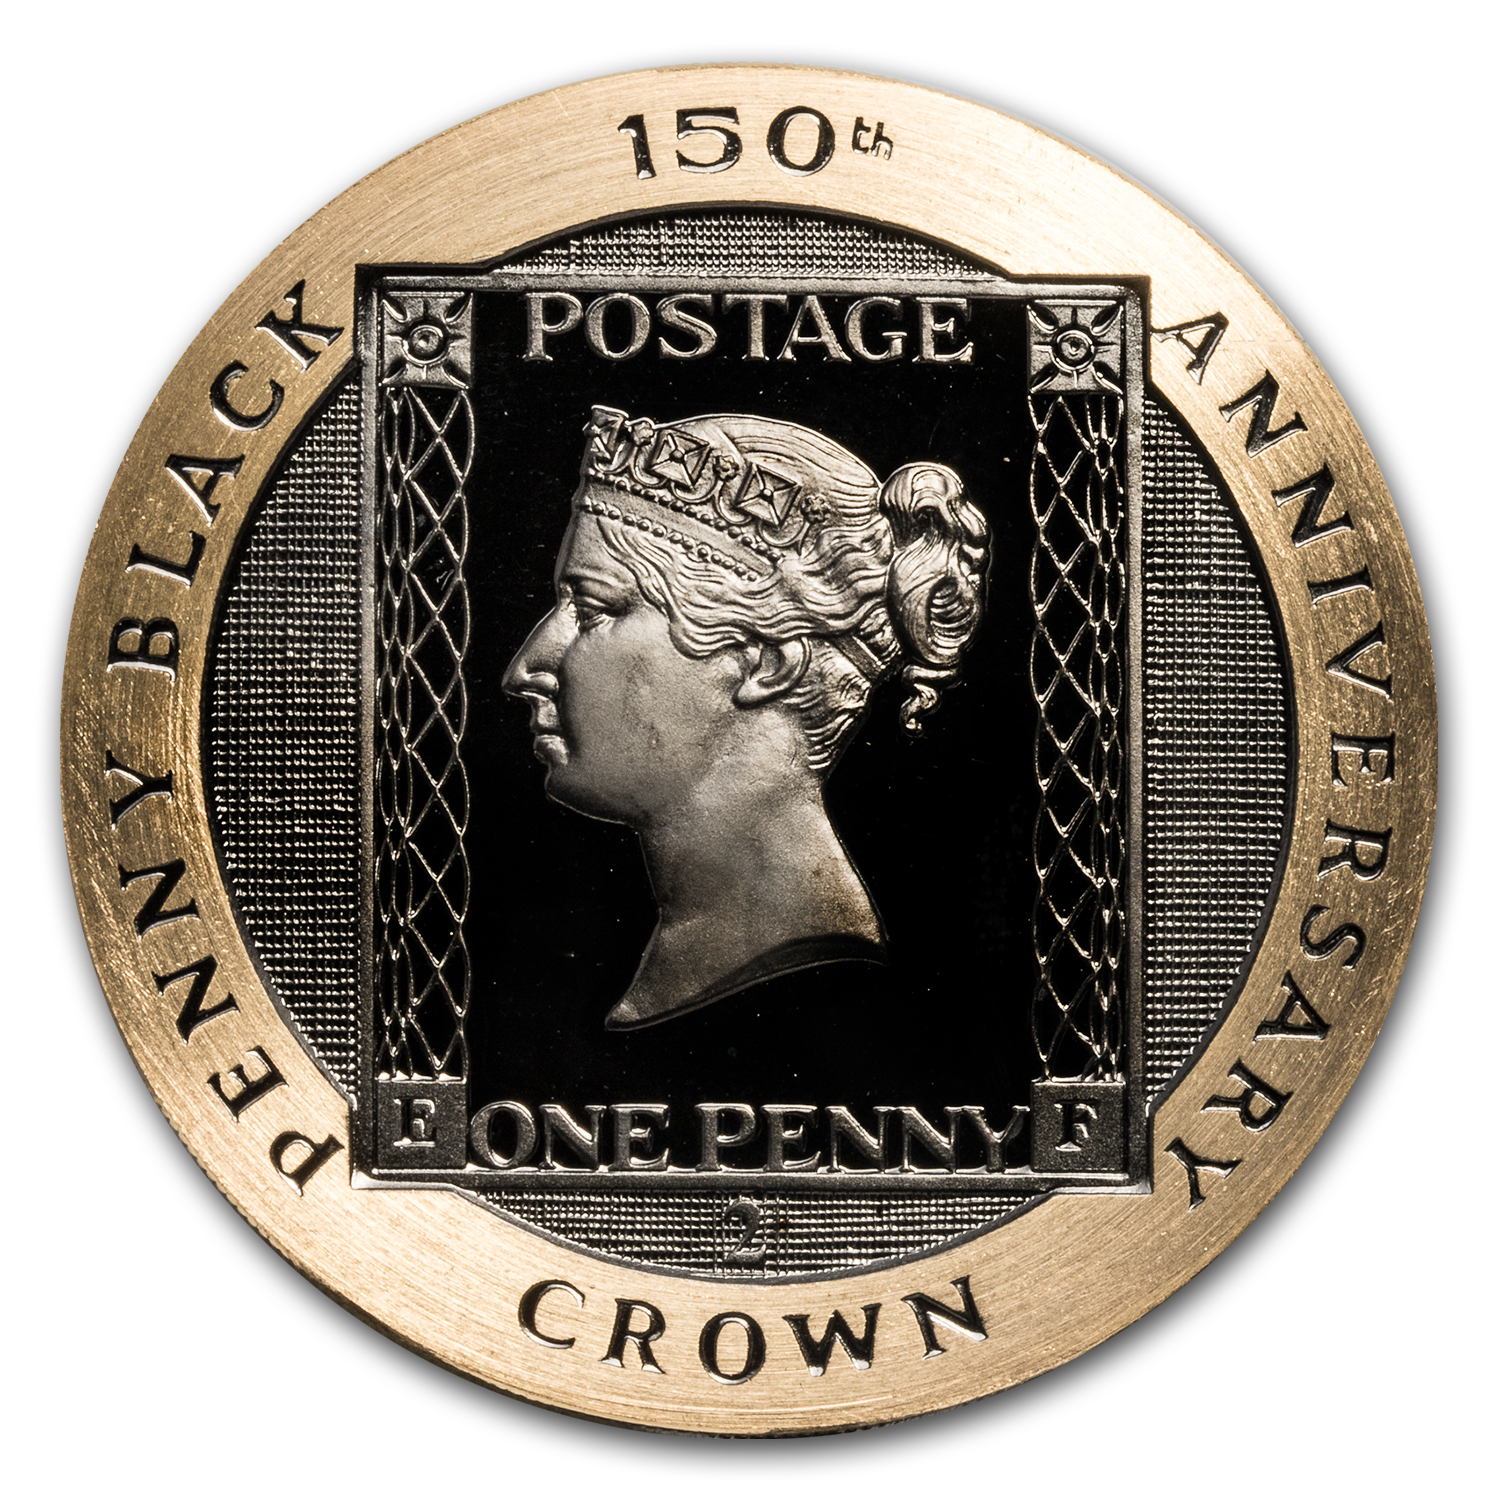 1990 Isle of Man 2 Crown Proof Gold Penny Black